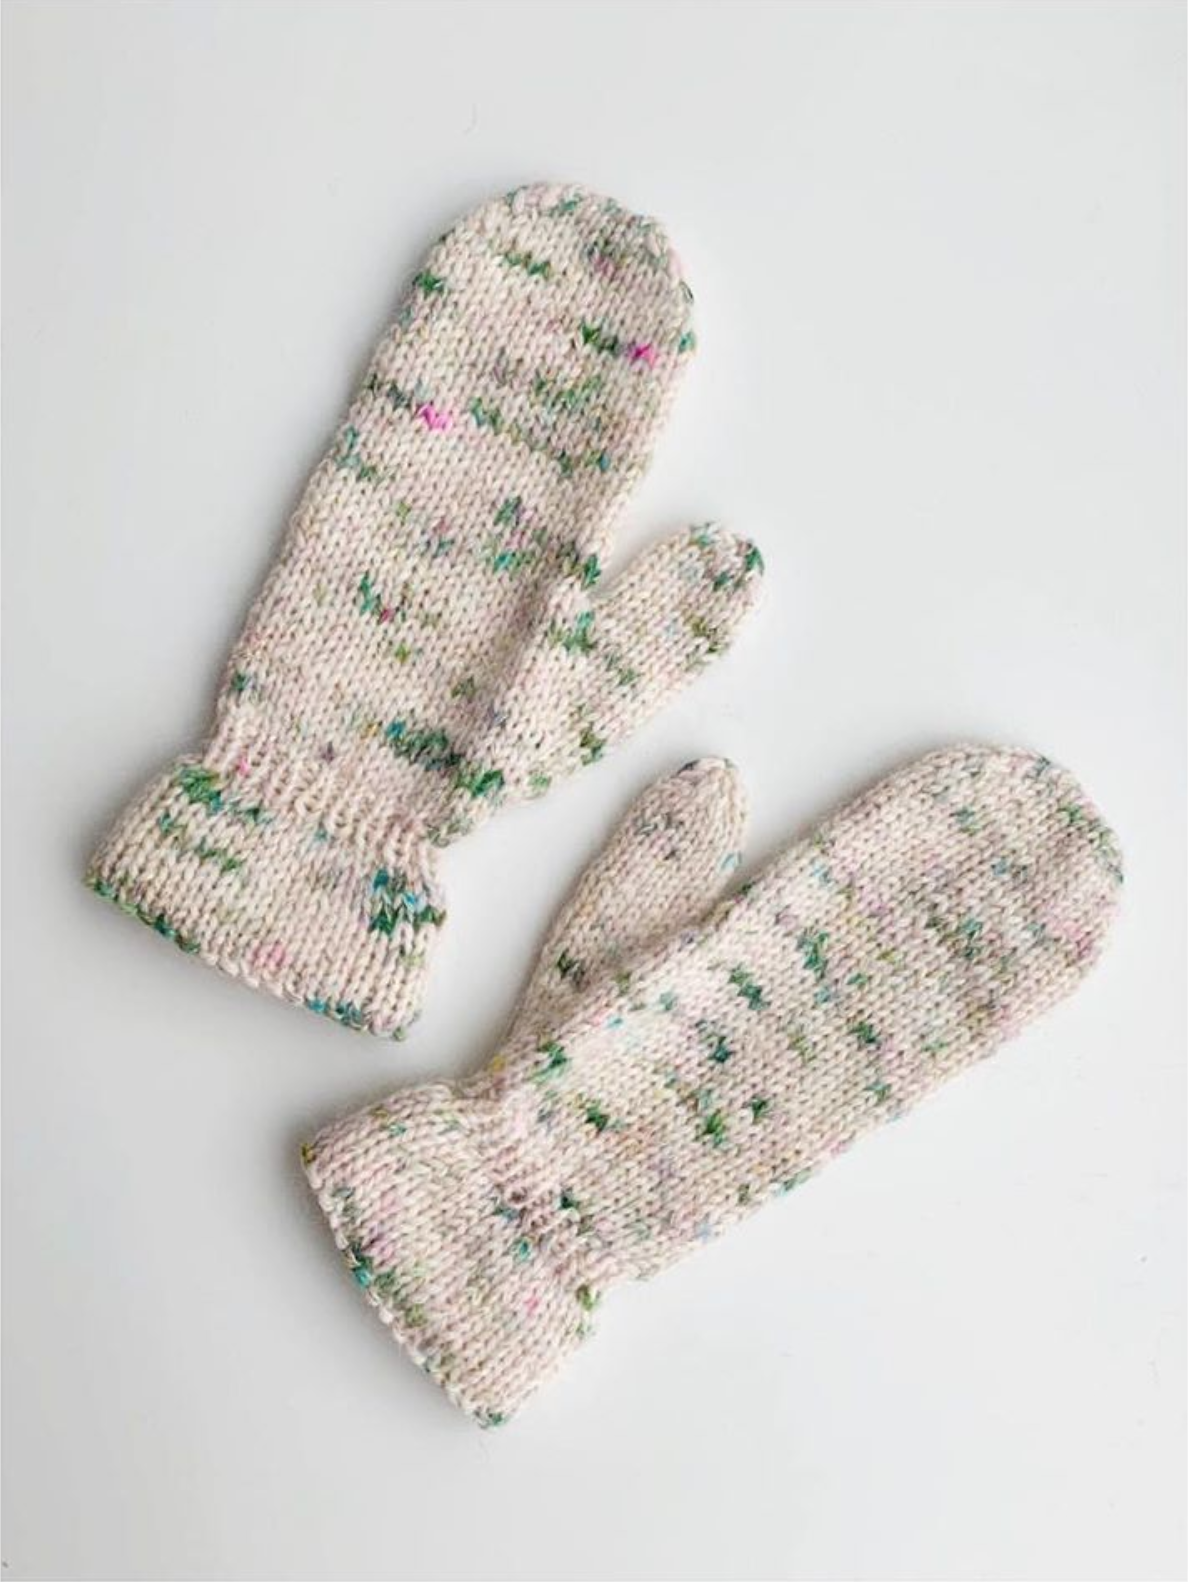 The Luxury Mittens (English) knitting pattern